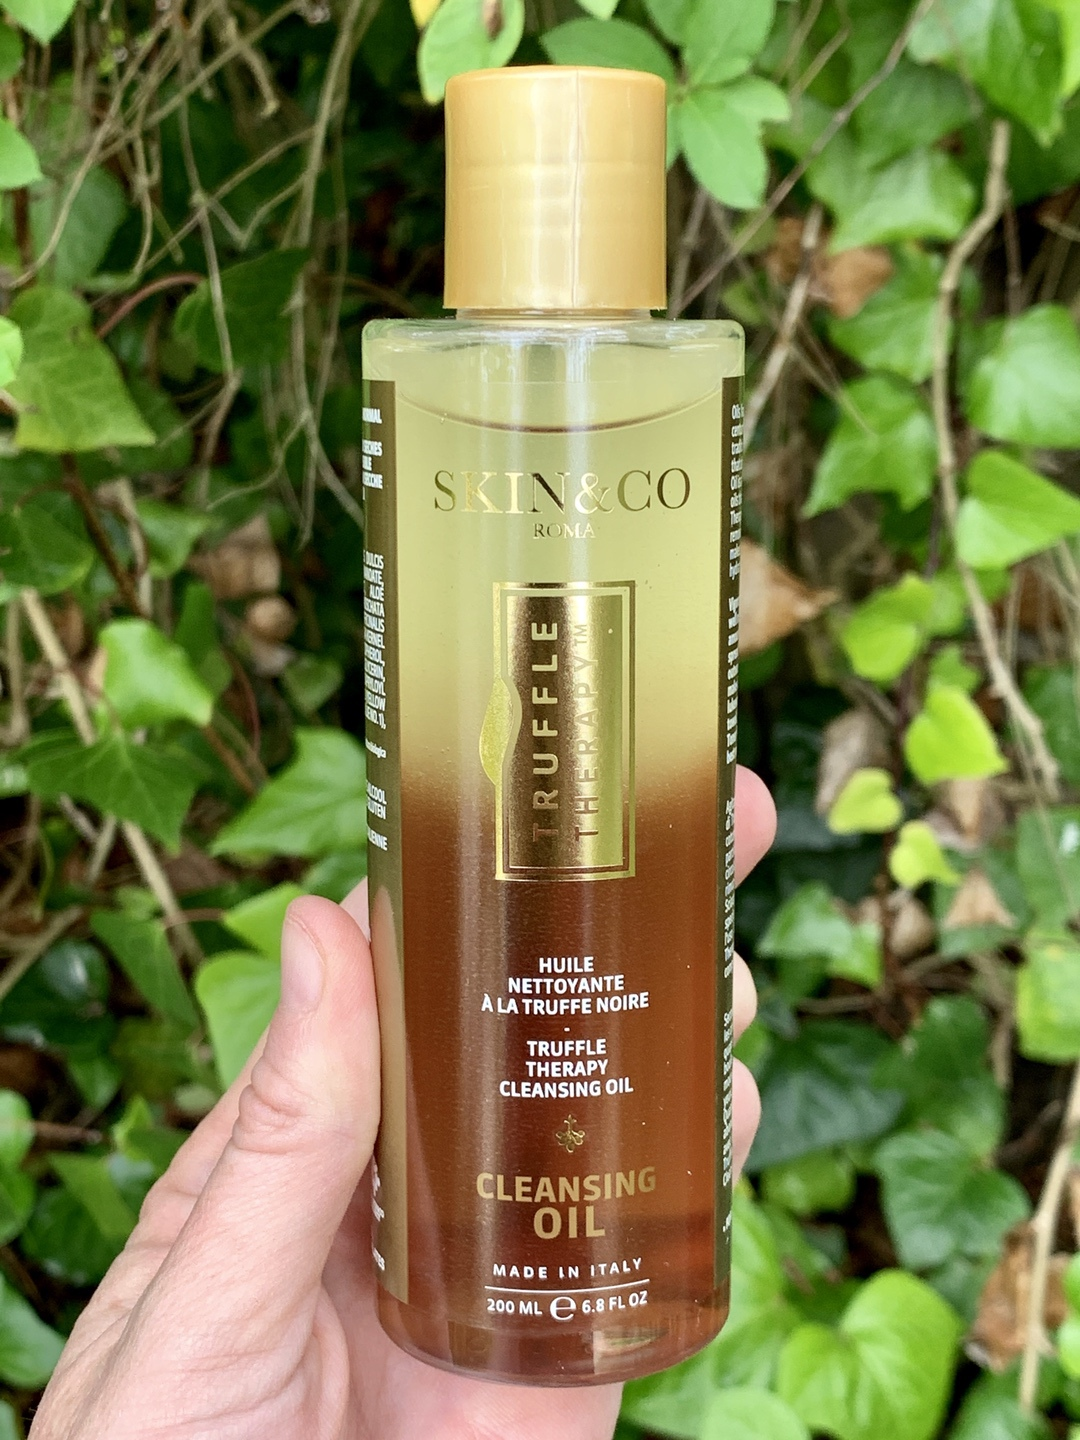 Skin & Co Truffle Therapy Cleansing Oil